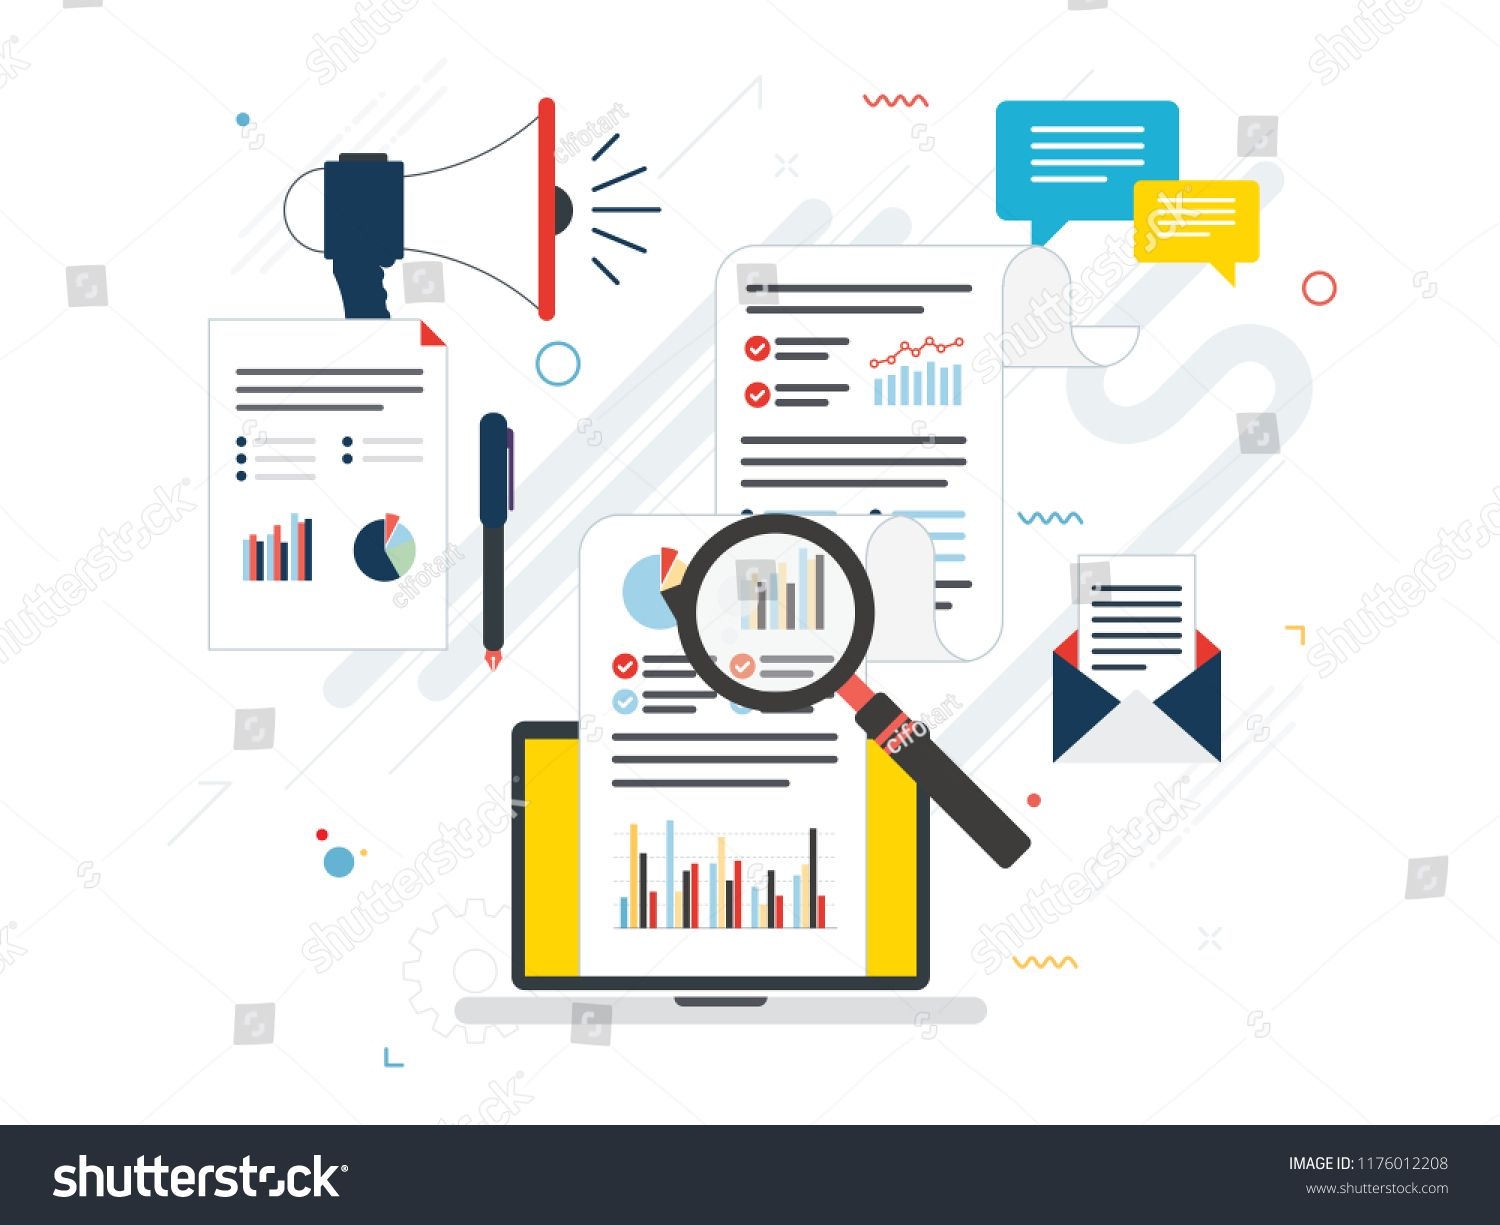 Flat Design Concepts For Business Marketing Analytics And